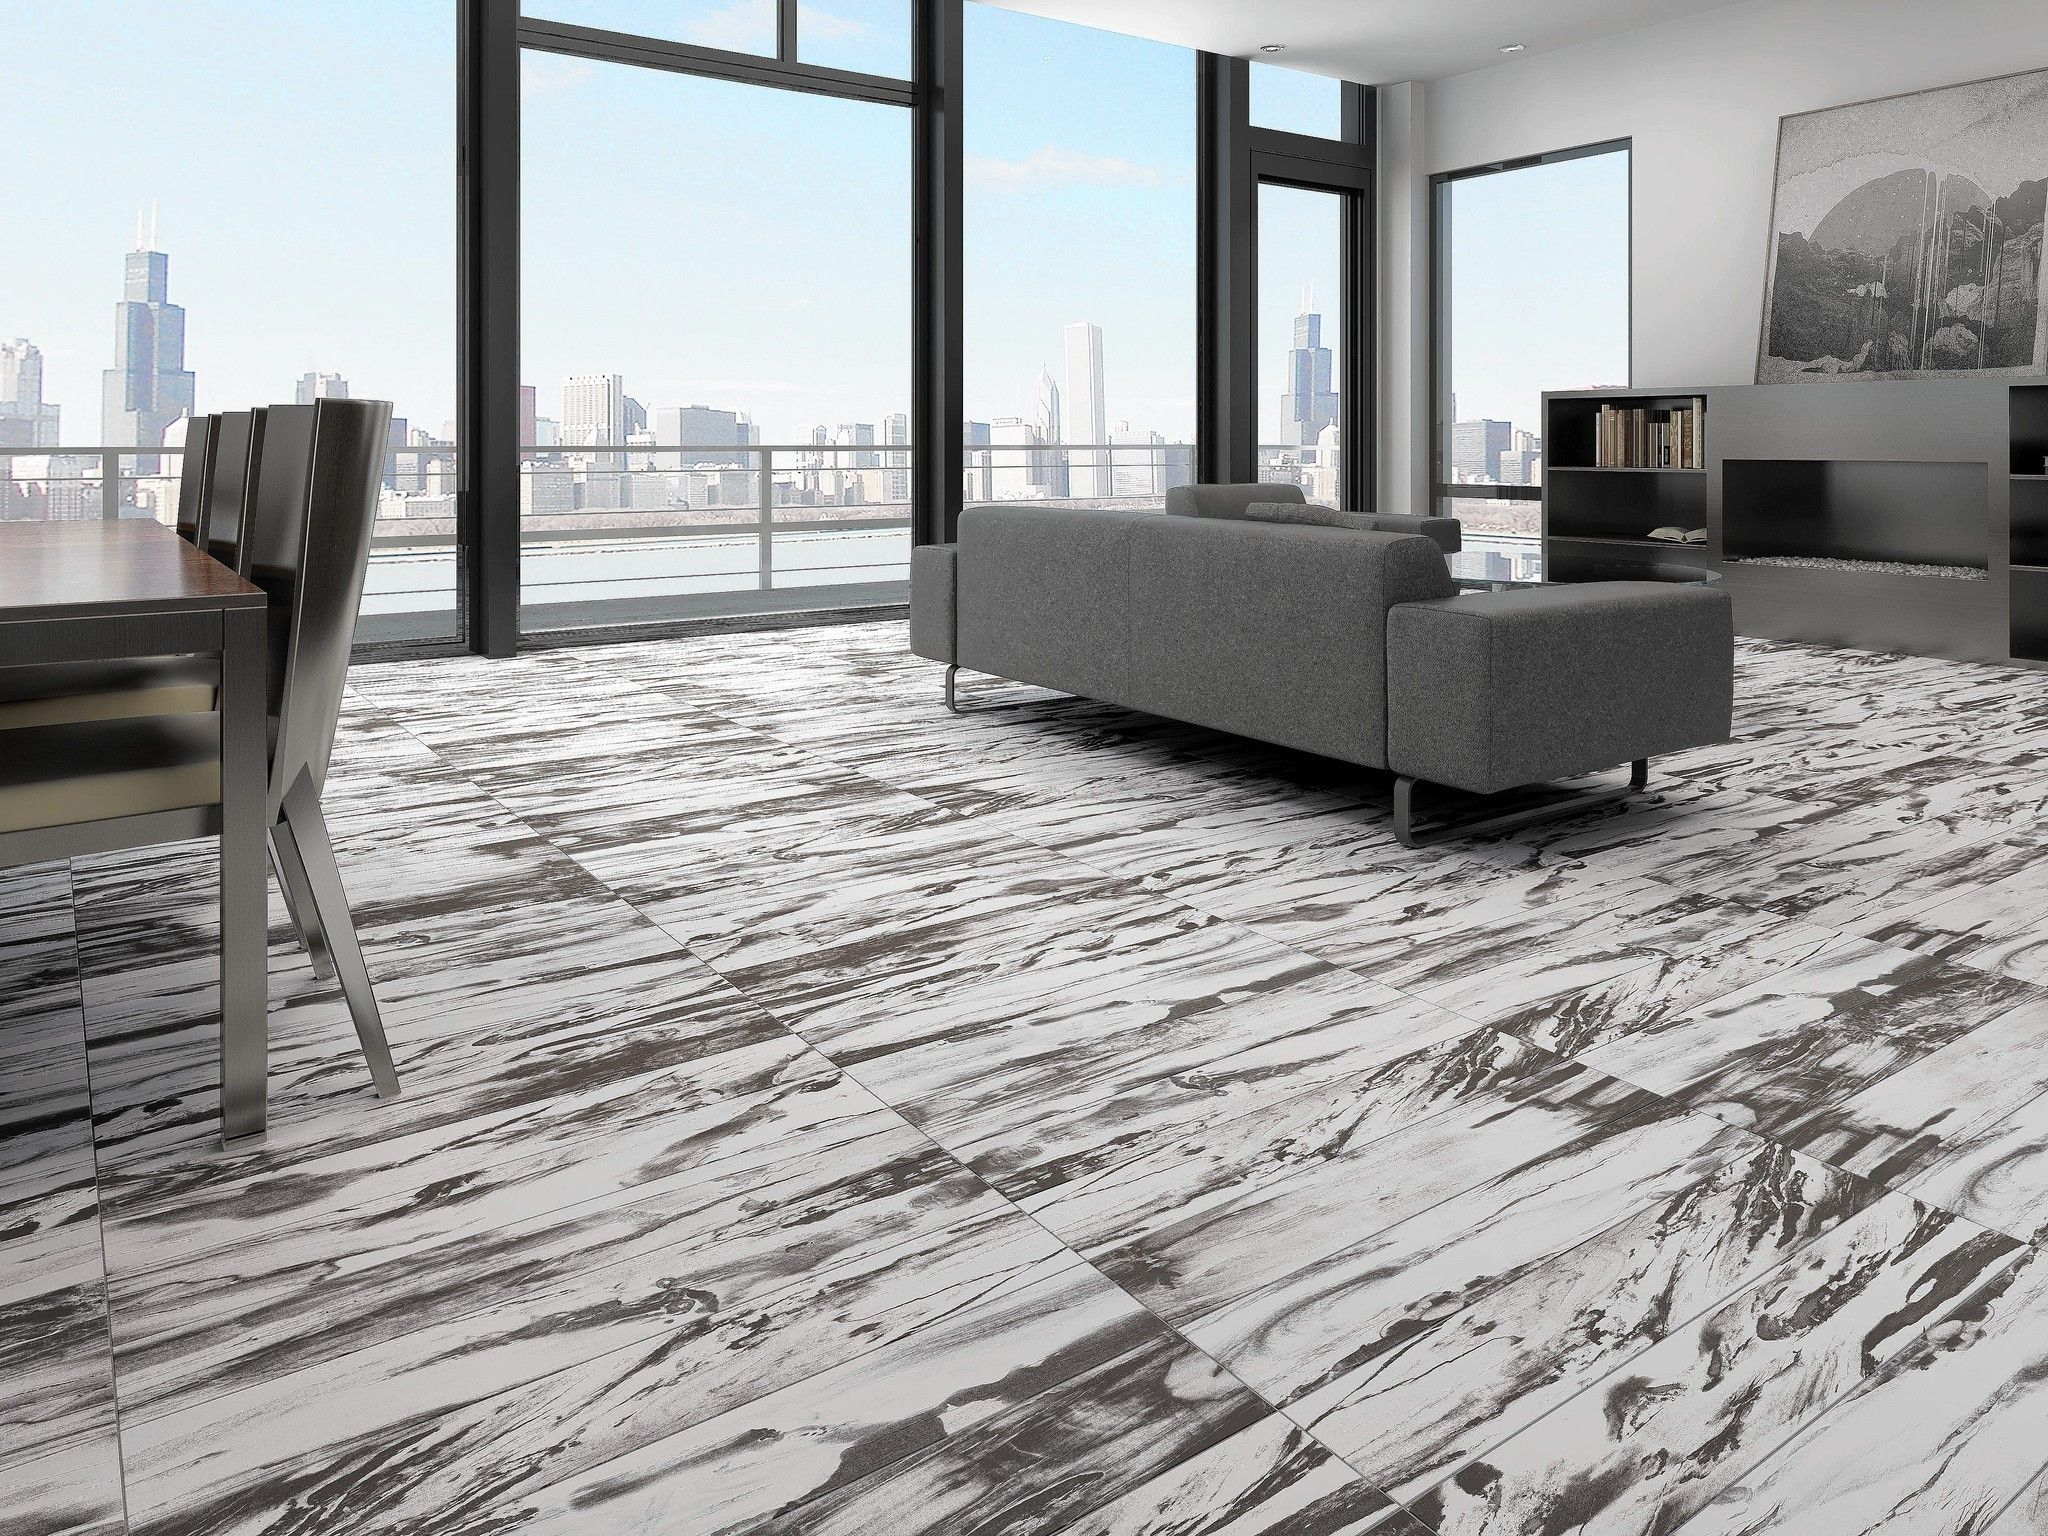 Modena Glazed Porcelain Is A Recreation Of Petrified Wood By Emser Tile Description From Floorninja I Searched For This On Bing Images